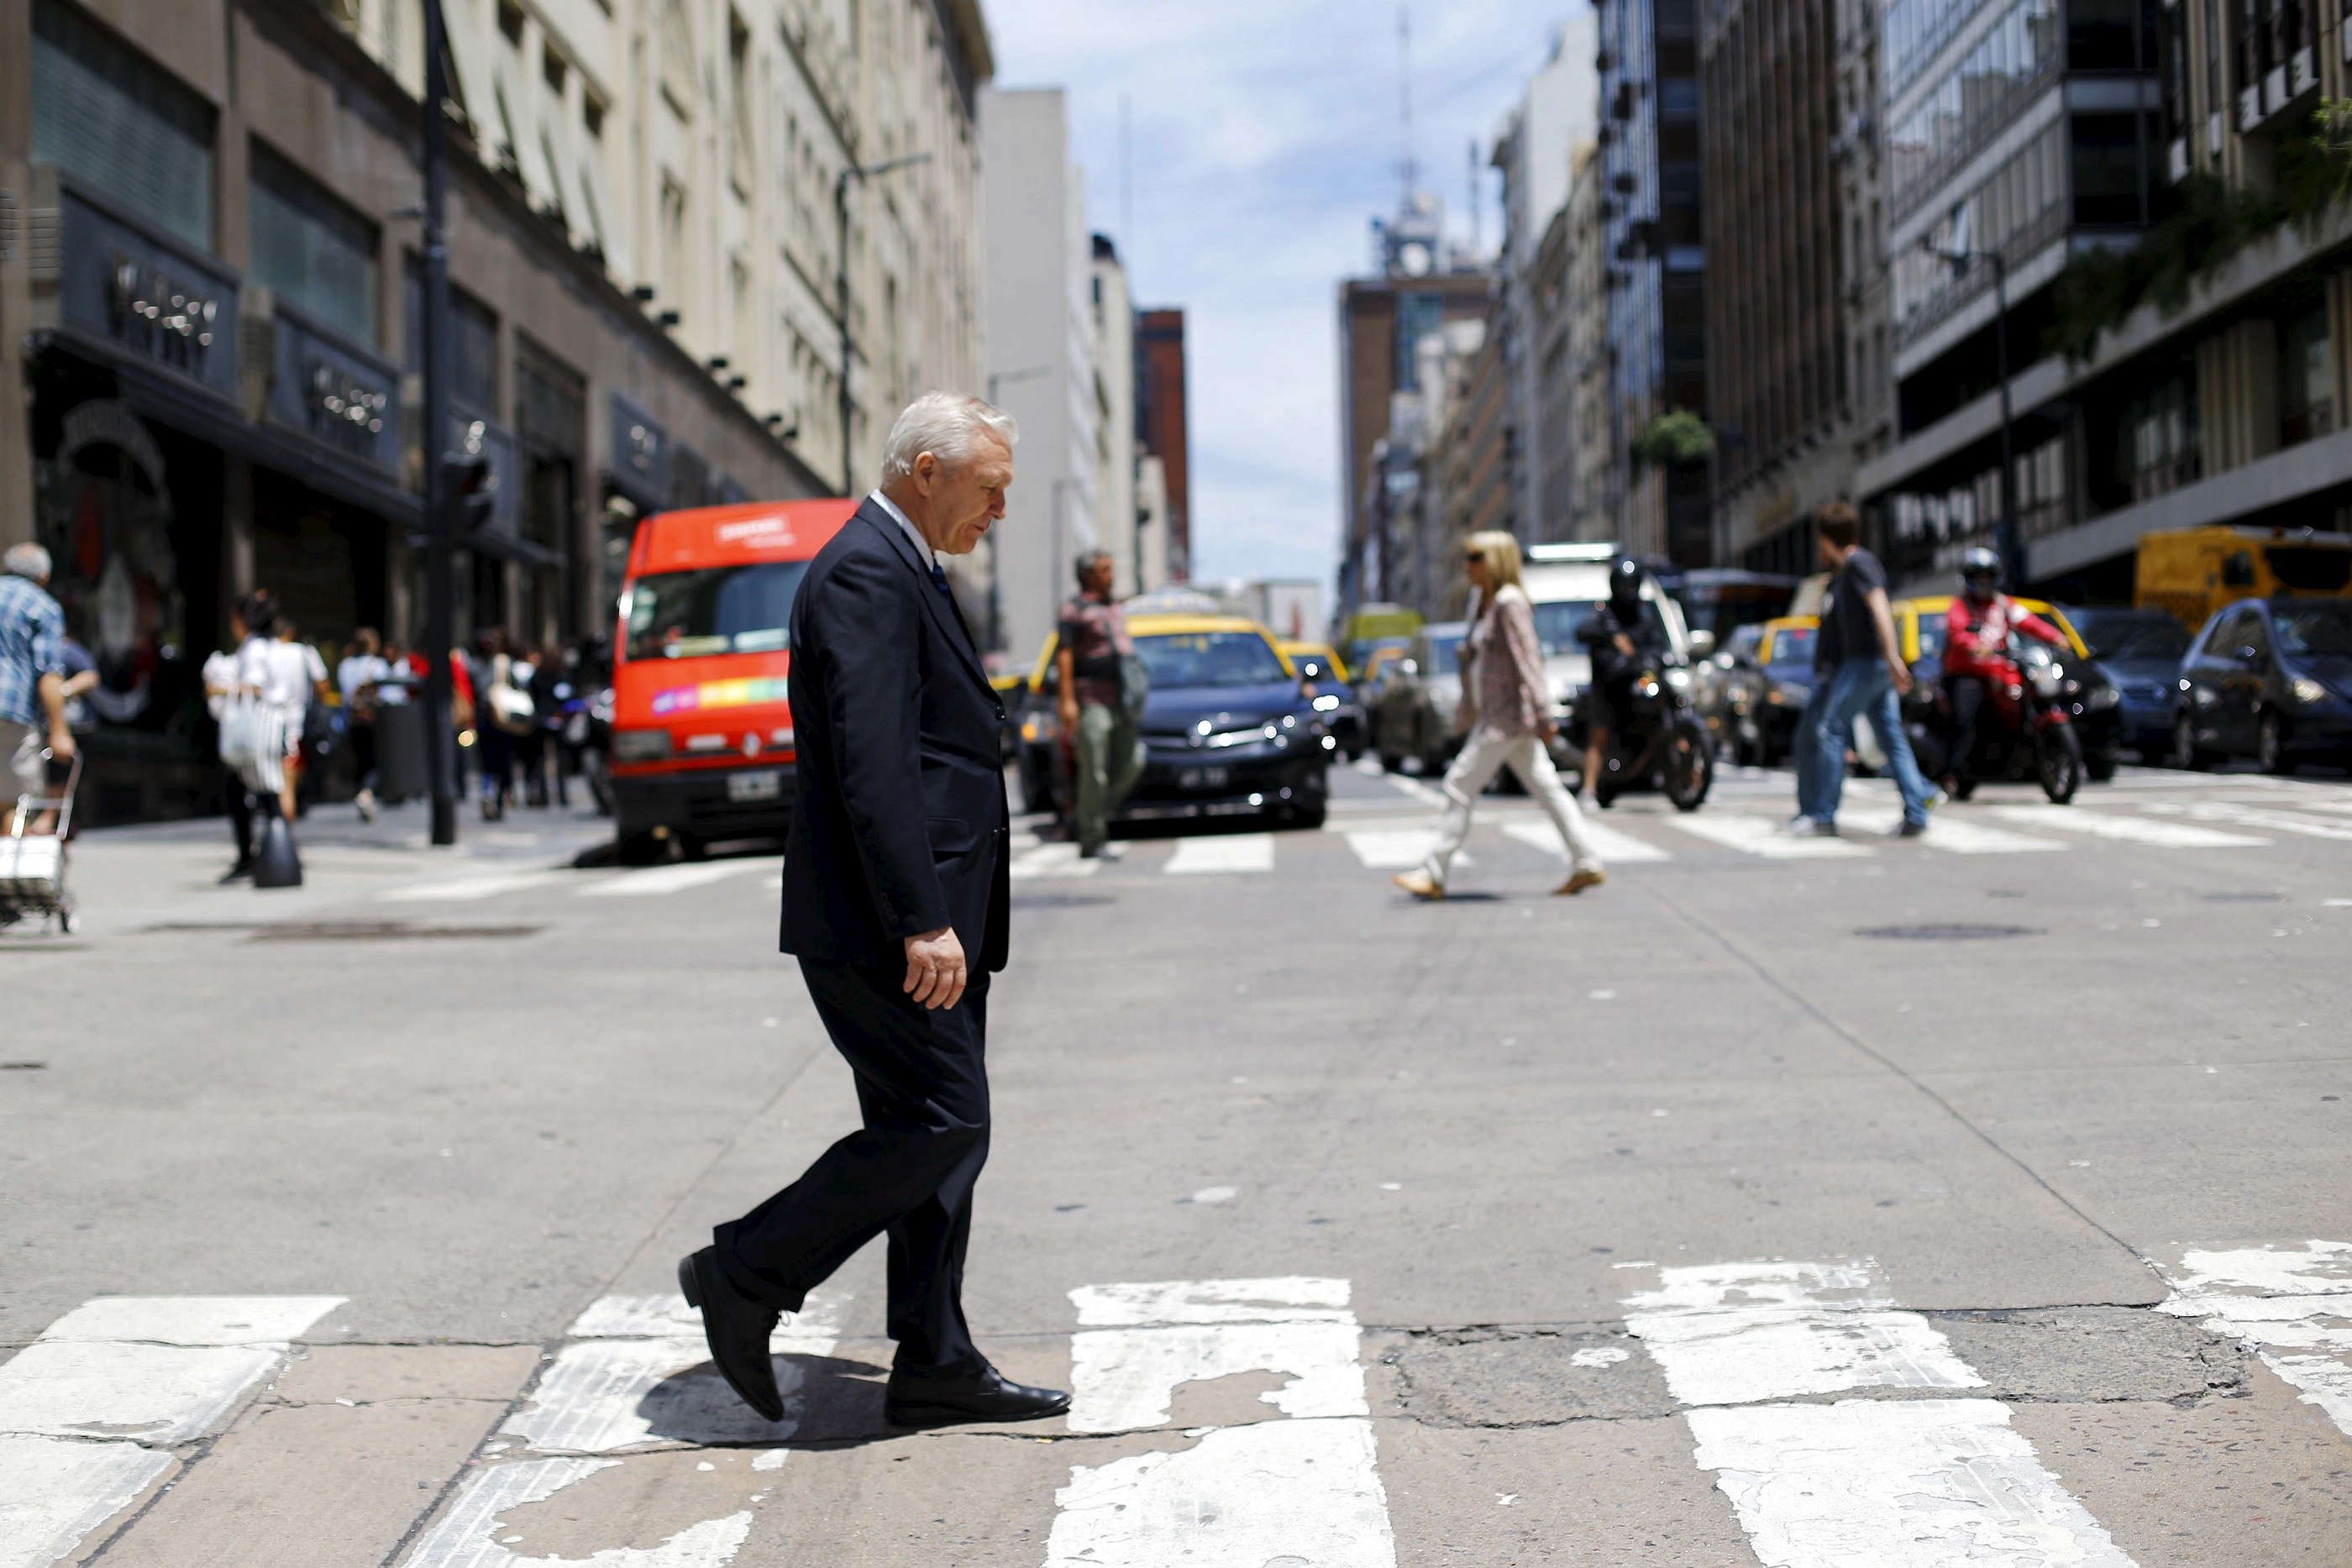 """A man crosses """"Corrientes"""" avenue in a financial area in downtown Buenos Aires, Argentina, November 23, 2015. Argentine bond prices were giving back some earlier gains on Monday as investors took profits following a widely expected victory for market favorite Mauricio Macri in the presidential elections over the weekend. REUTERS/Ivan Alvarado - GF20000071141"""